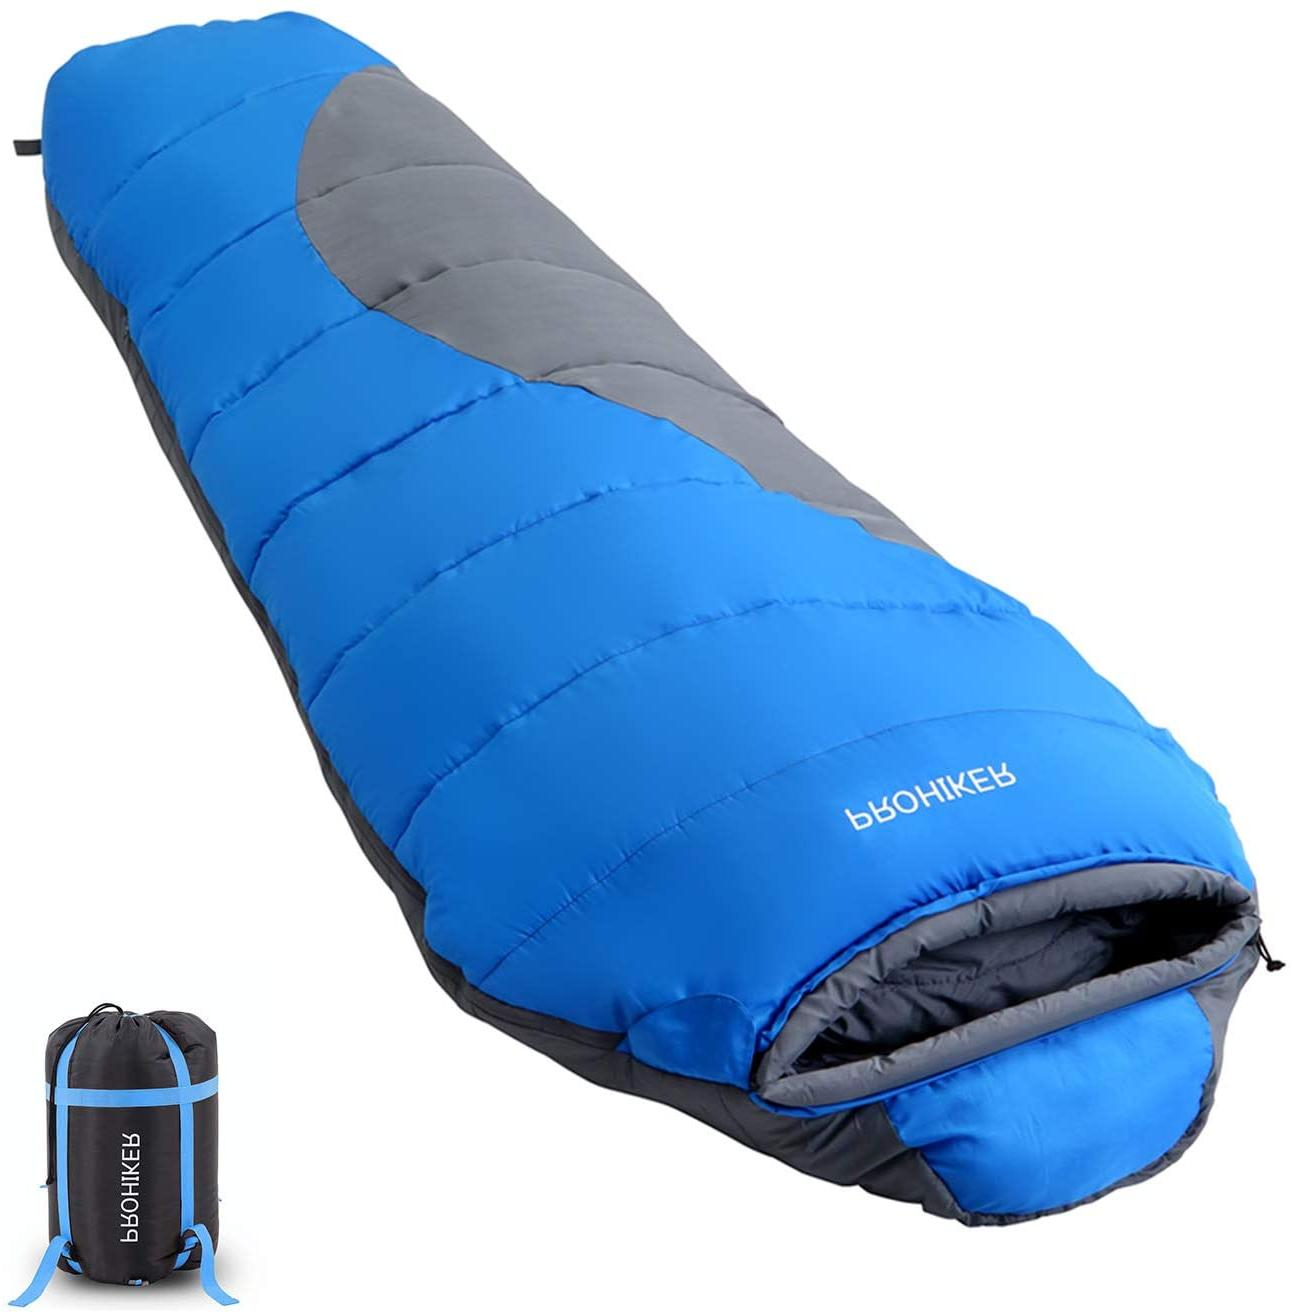 mummy sleeping bag lightweight for adults cold